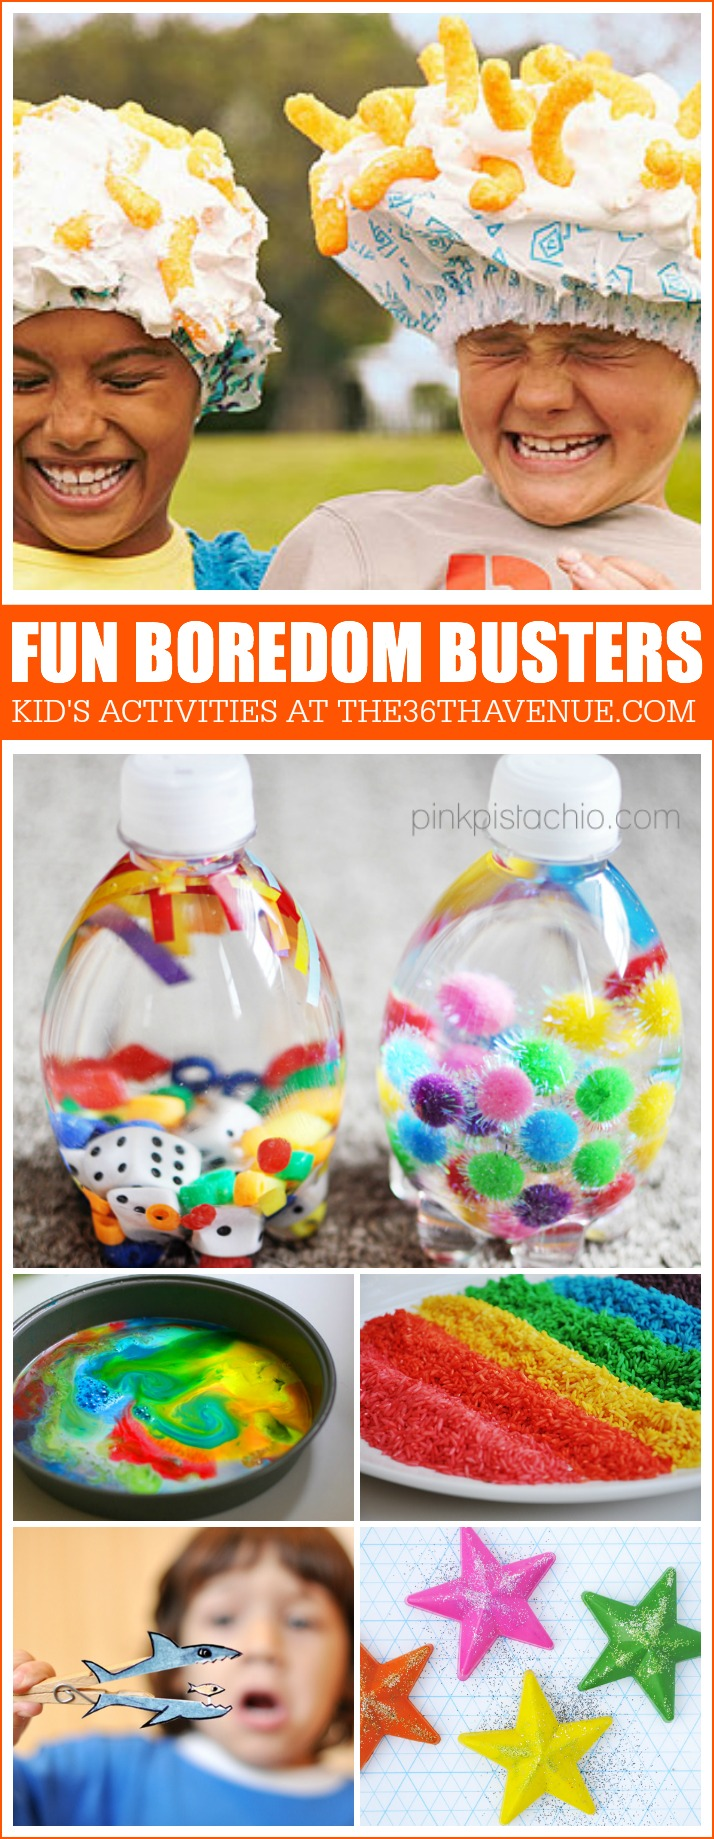 Awesome Kid's Activities at the36thavenue.com